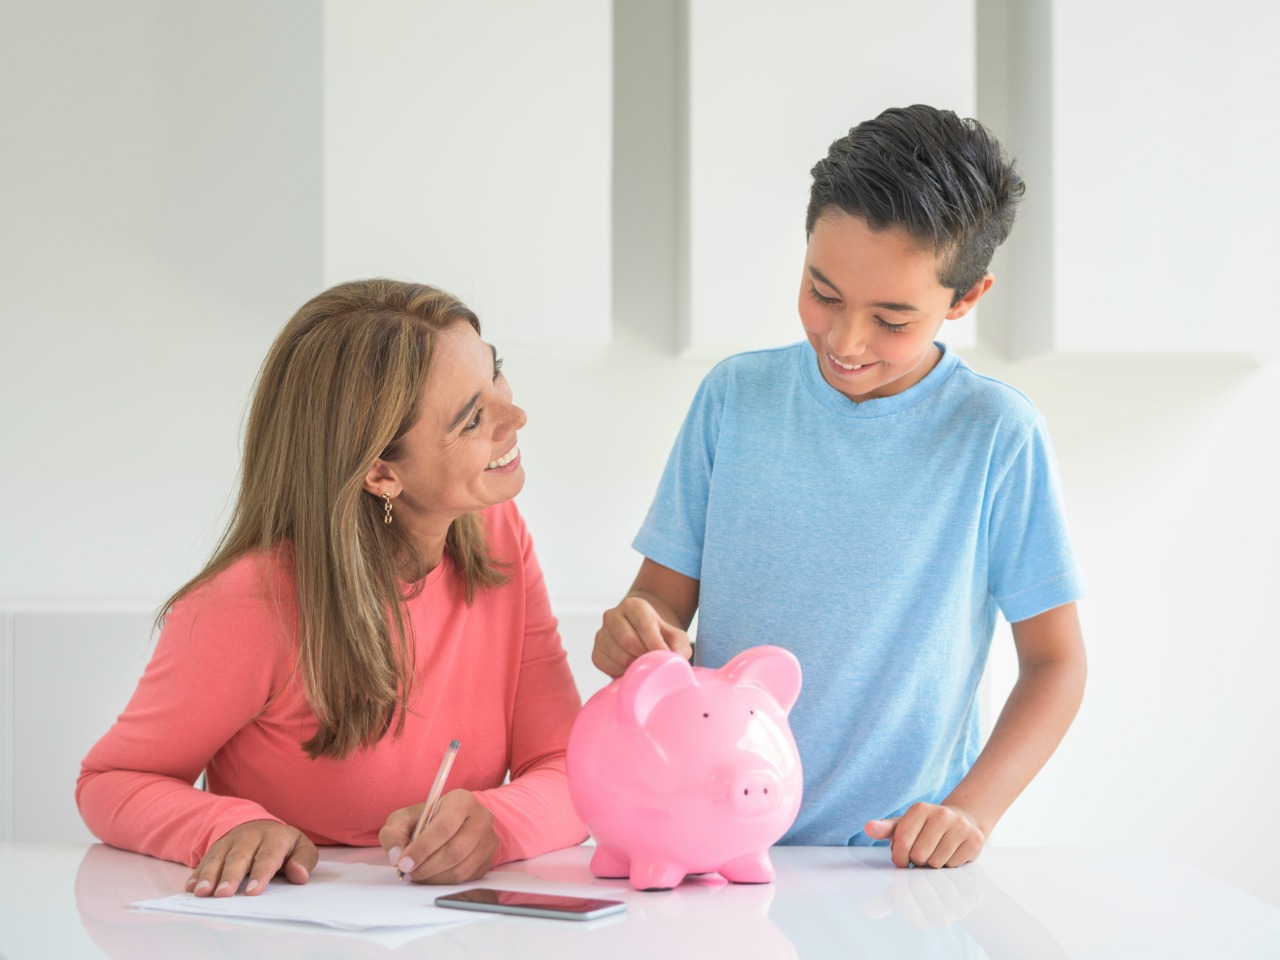 The Best Financial Advice a Mom Can Give Facebook2